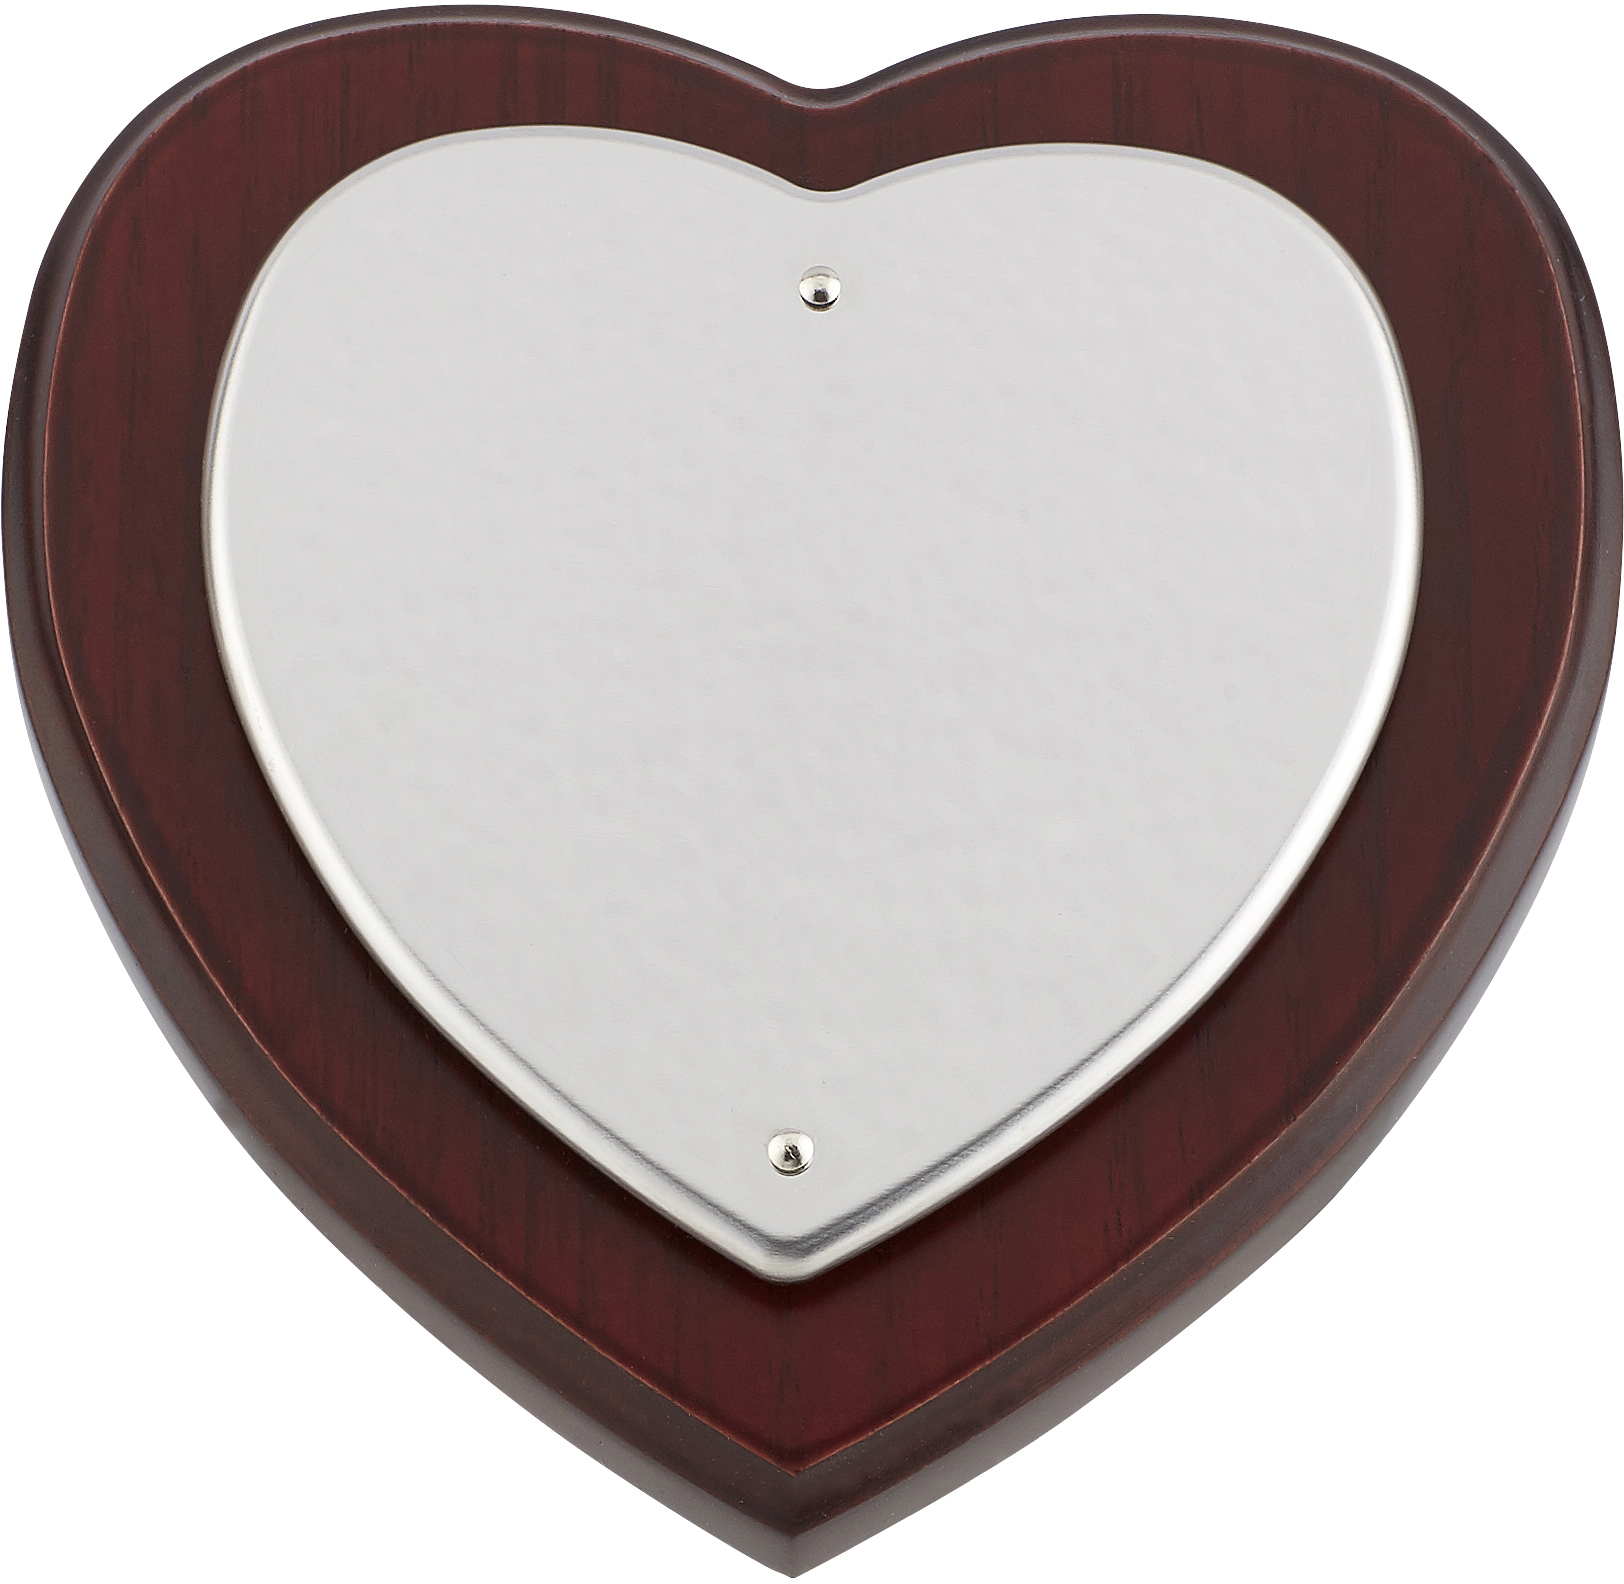 "Heart Shaped Shield 12.5cm (5"")"